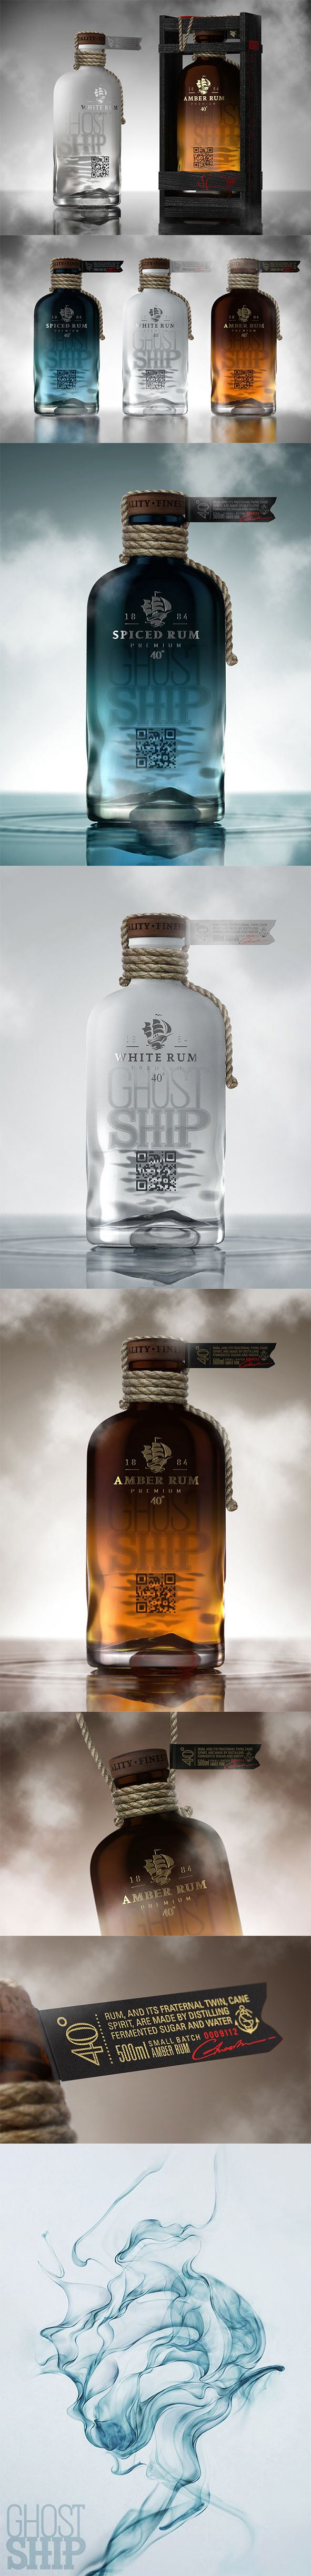 Ghost Ship Rum #packaging design and product photography